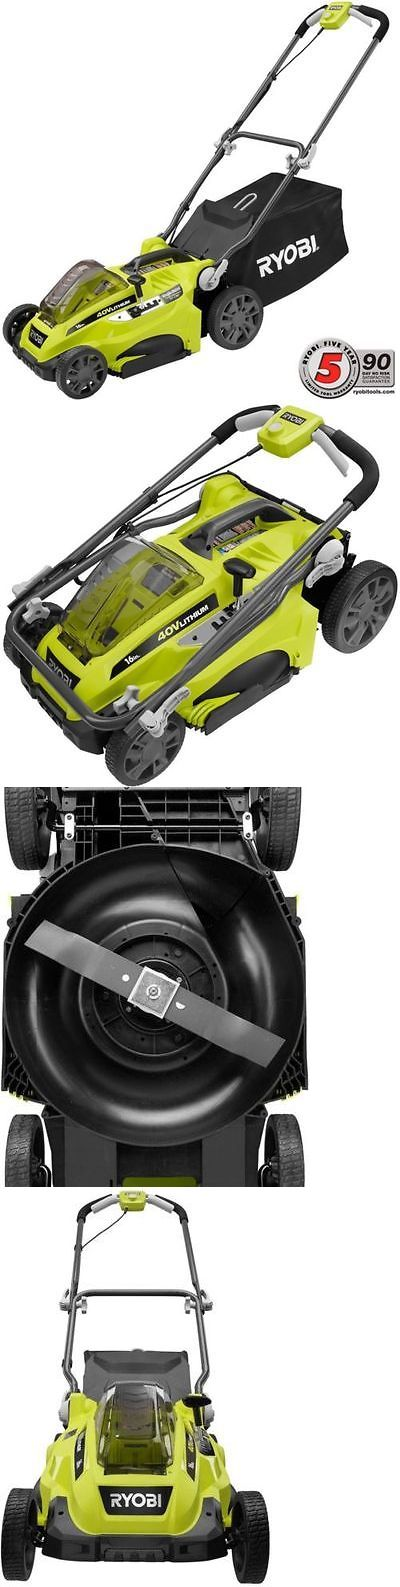 Walk-Behind Mowers 71272: Ryobi Push Lawn Mower Cordless Walk Behind 40-Volt 16 In. - Battery Not Included -> BUY IT NOW ONLY: $207.51 on eBay!